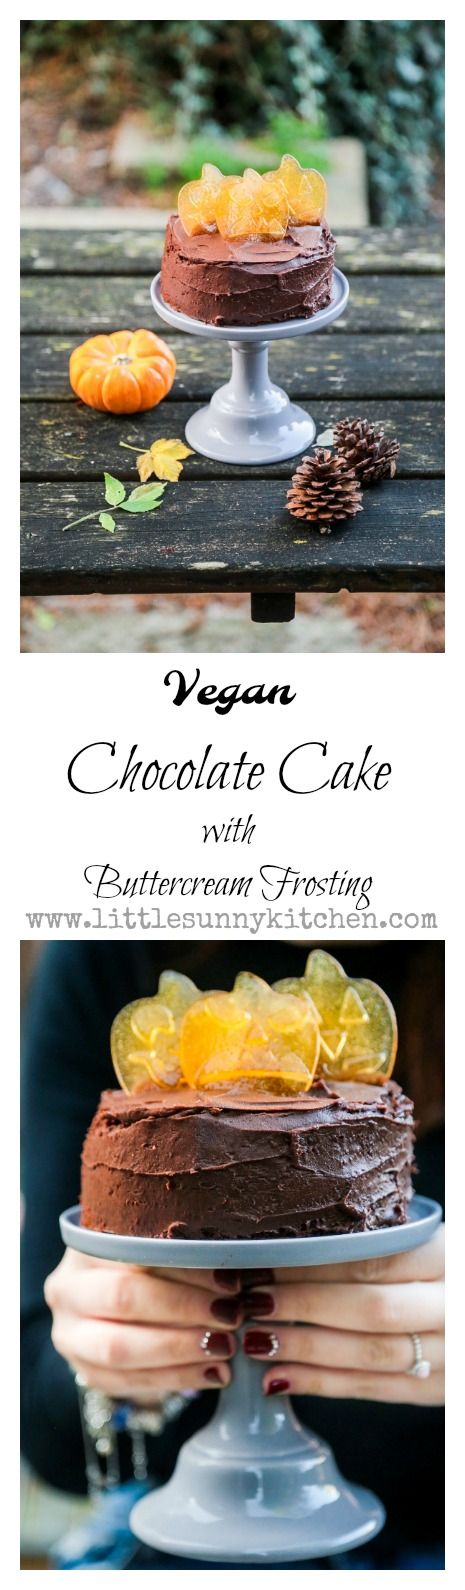 Vegan chocolate cake with buttercream frosting and pumpkin shaped candy for Halloween